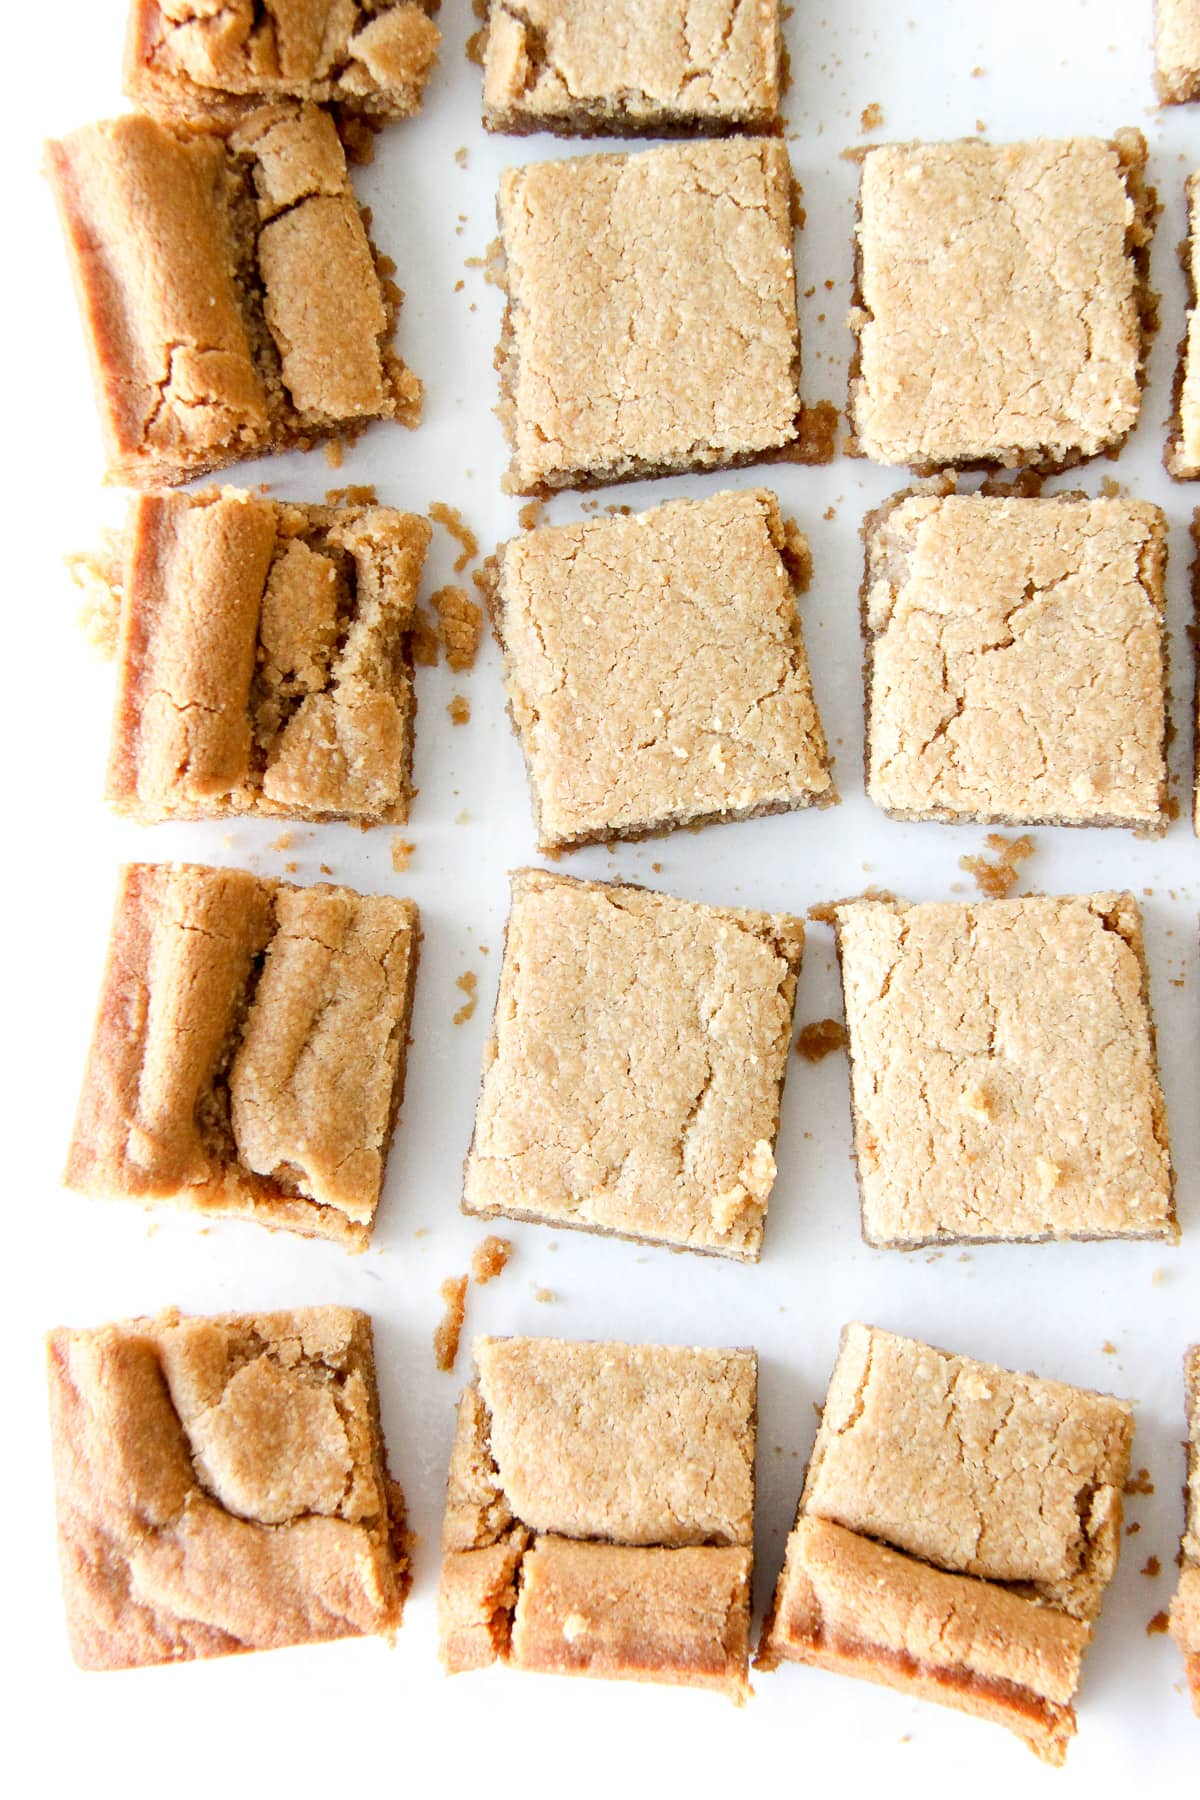 Classic Baking Recipes: Peanut Butter Blondies